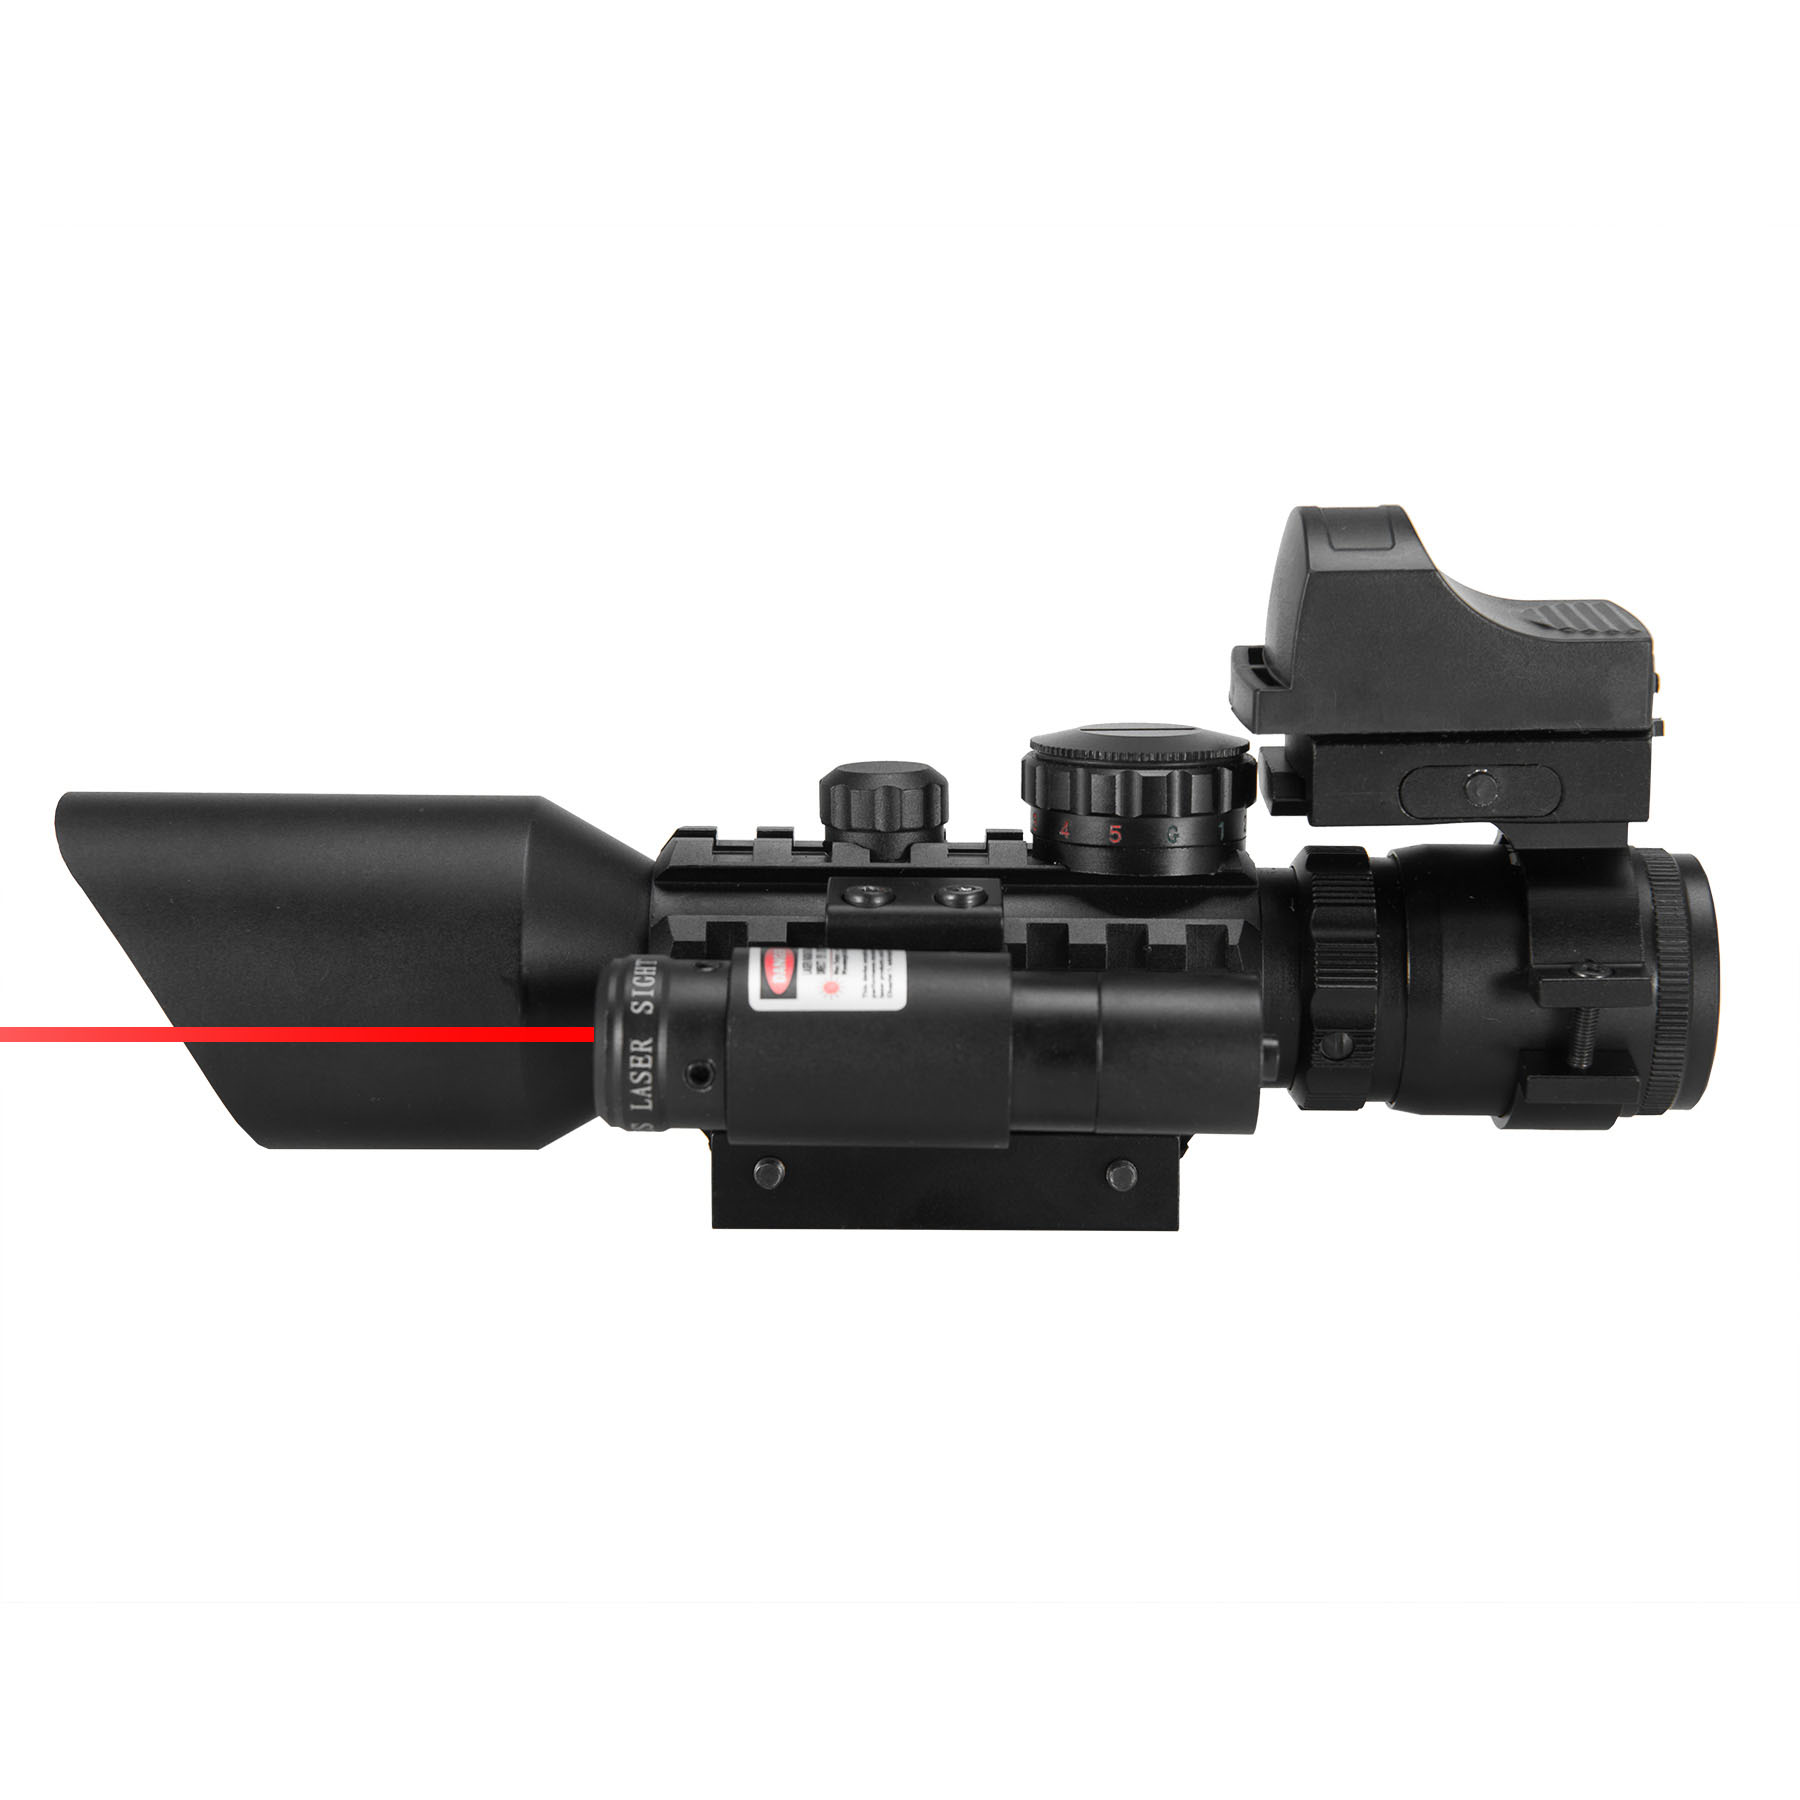 3-10X40EG Rangefinder Mil Dot Riflescope with Red Dot Sight & Laser Sight by